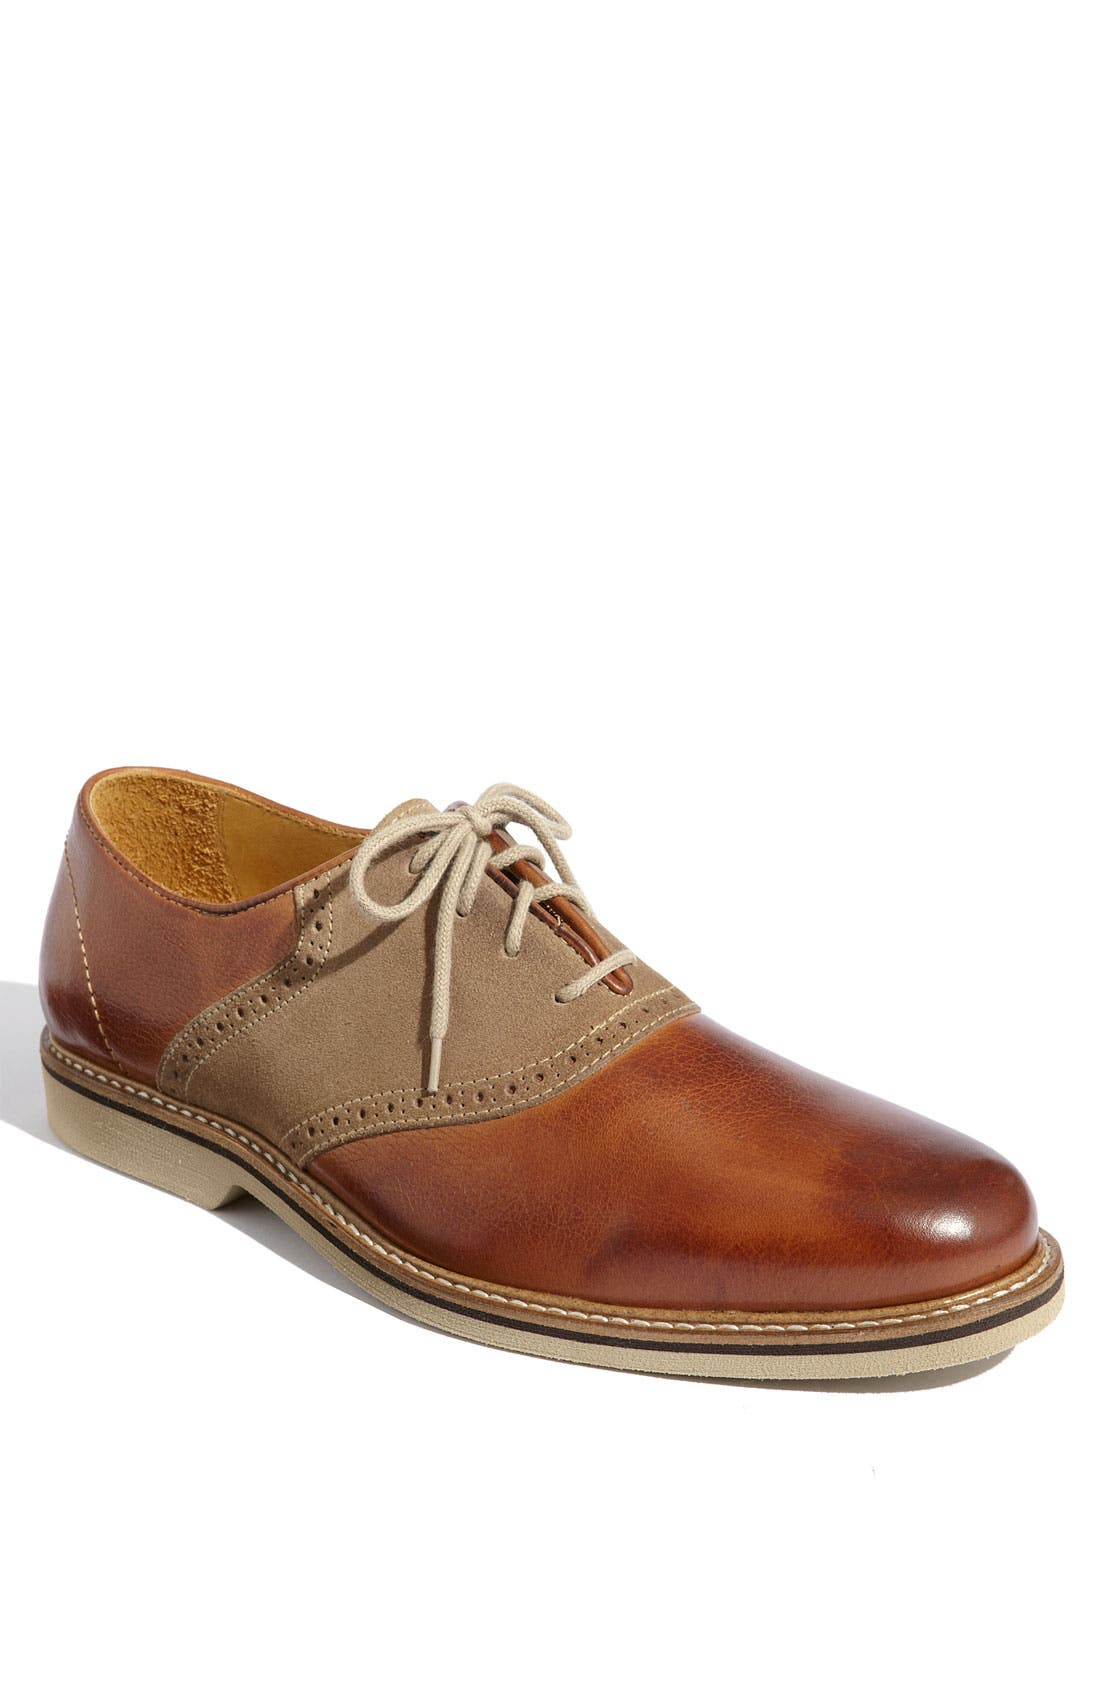 Main Image - 1901 'Bennett' Saddle Shoe (Men)